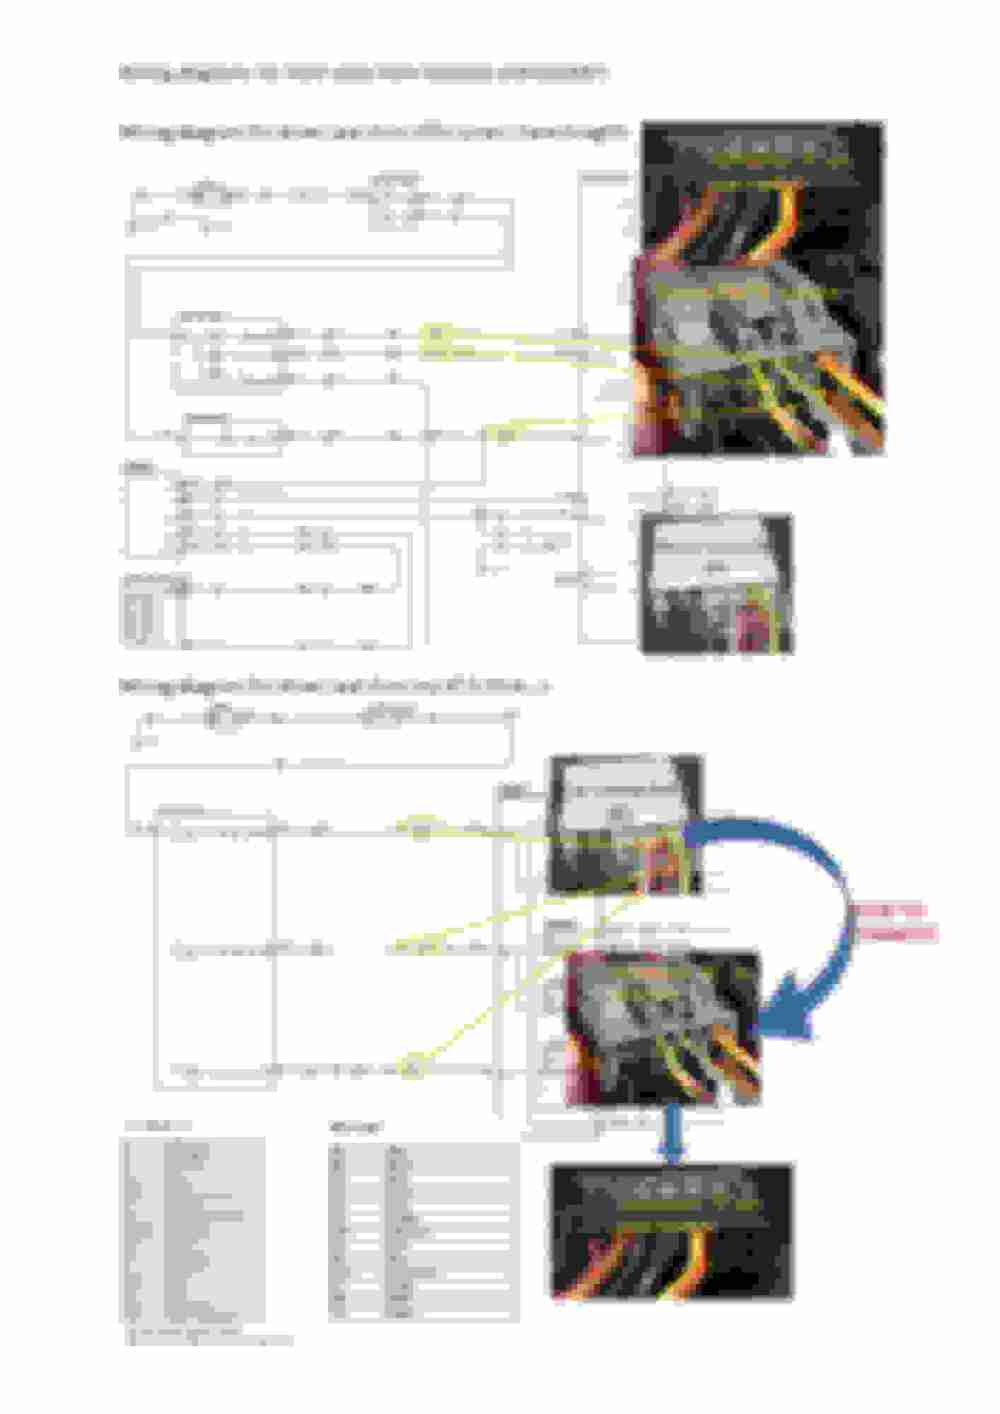 medium resolution of jaguar seat wiring diagram